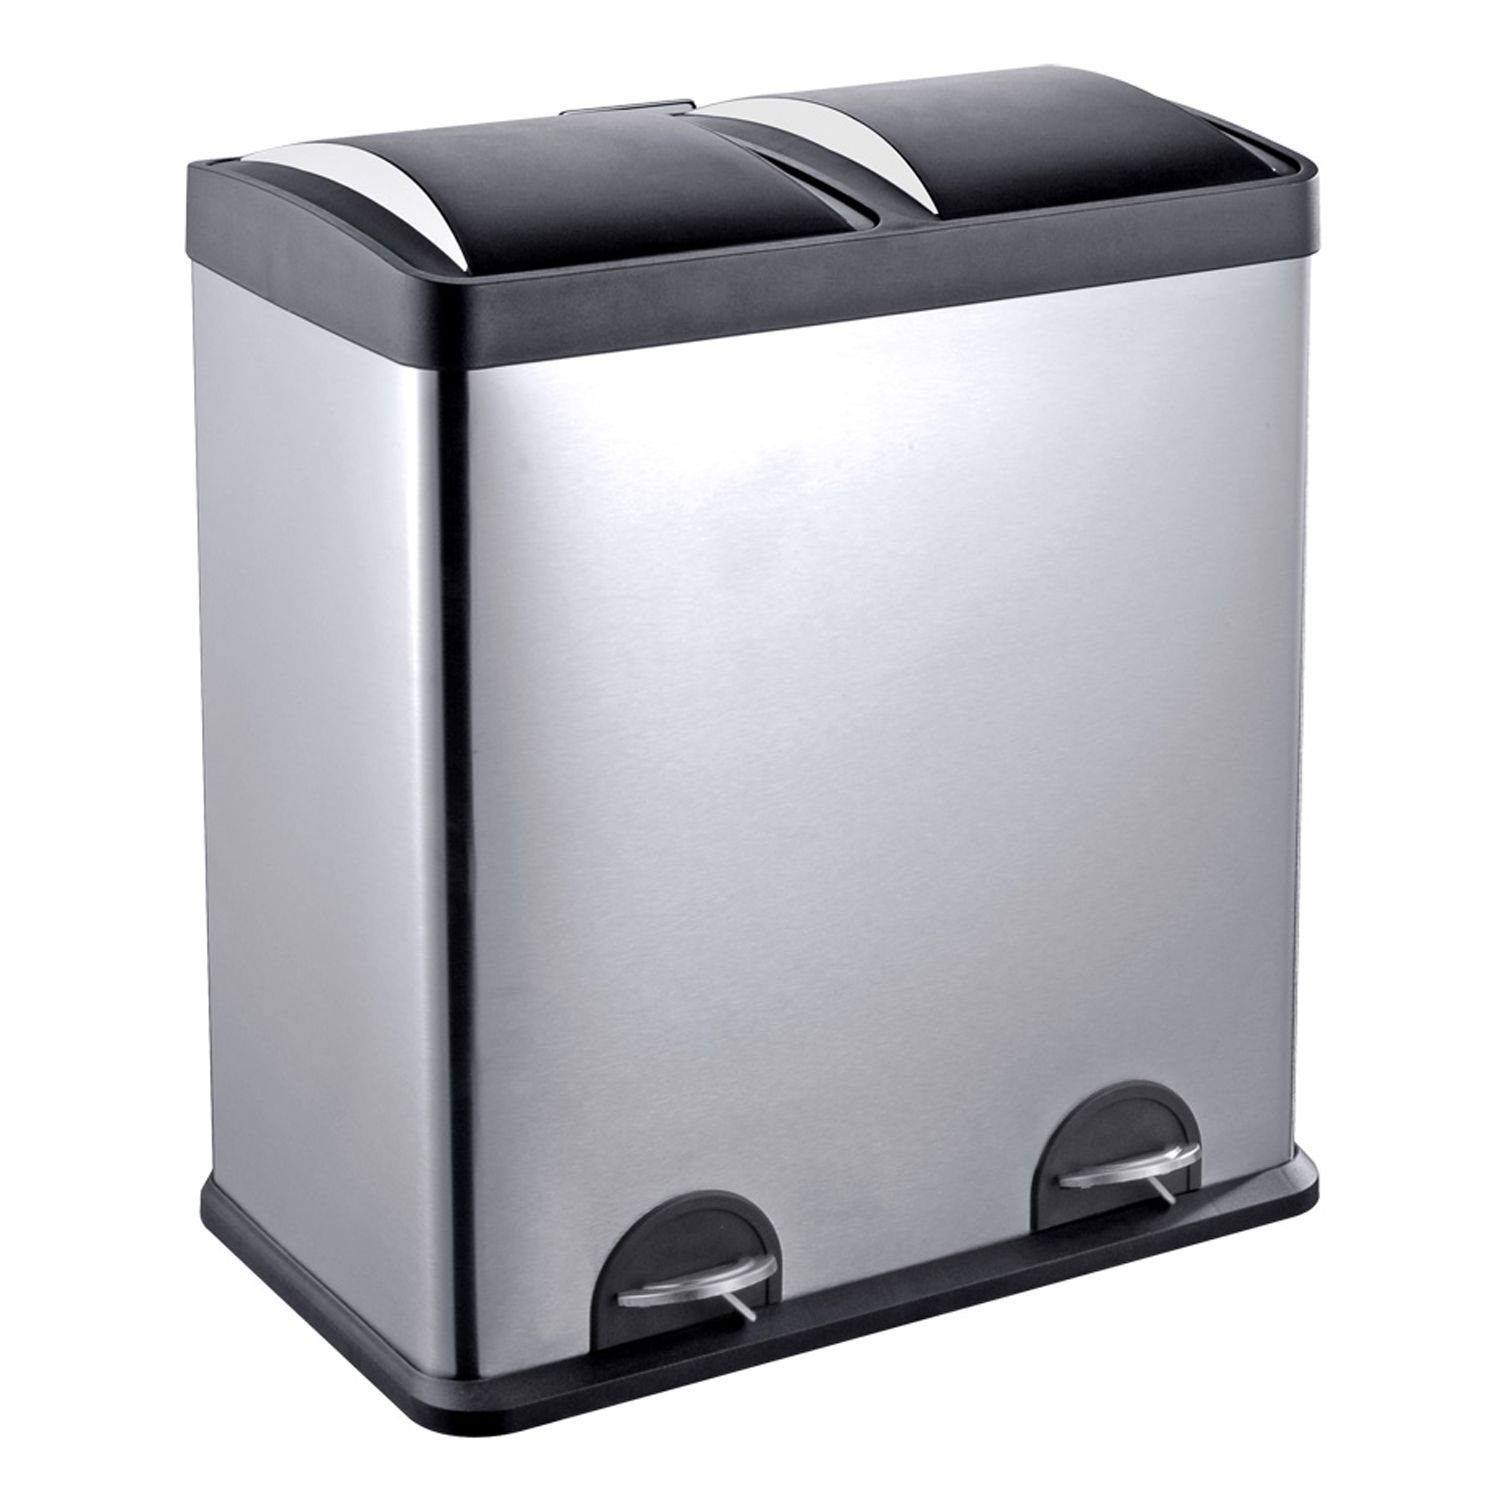 Recycle containers for home use -  Trash And Recycling Bin Hands Free Step Pedals Are An Ideal Home Or Office Storage Solution Use The Removable Inner Bins To Sort Garbage Recyclables